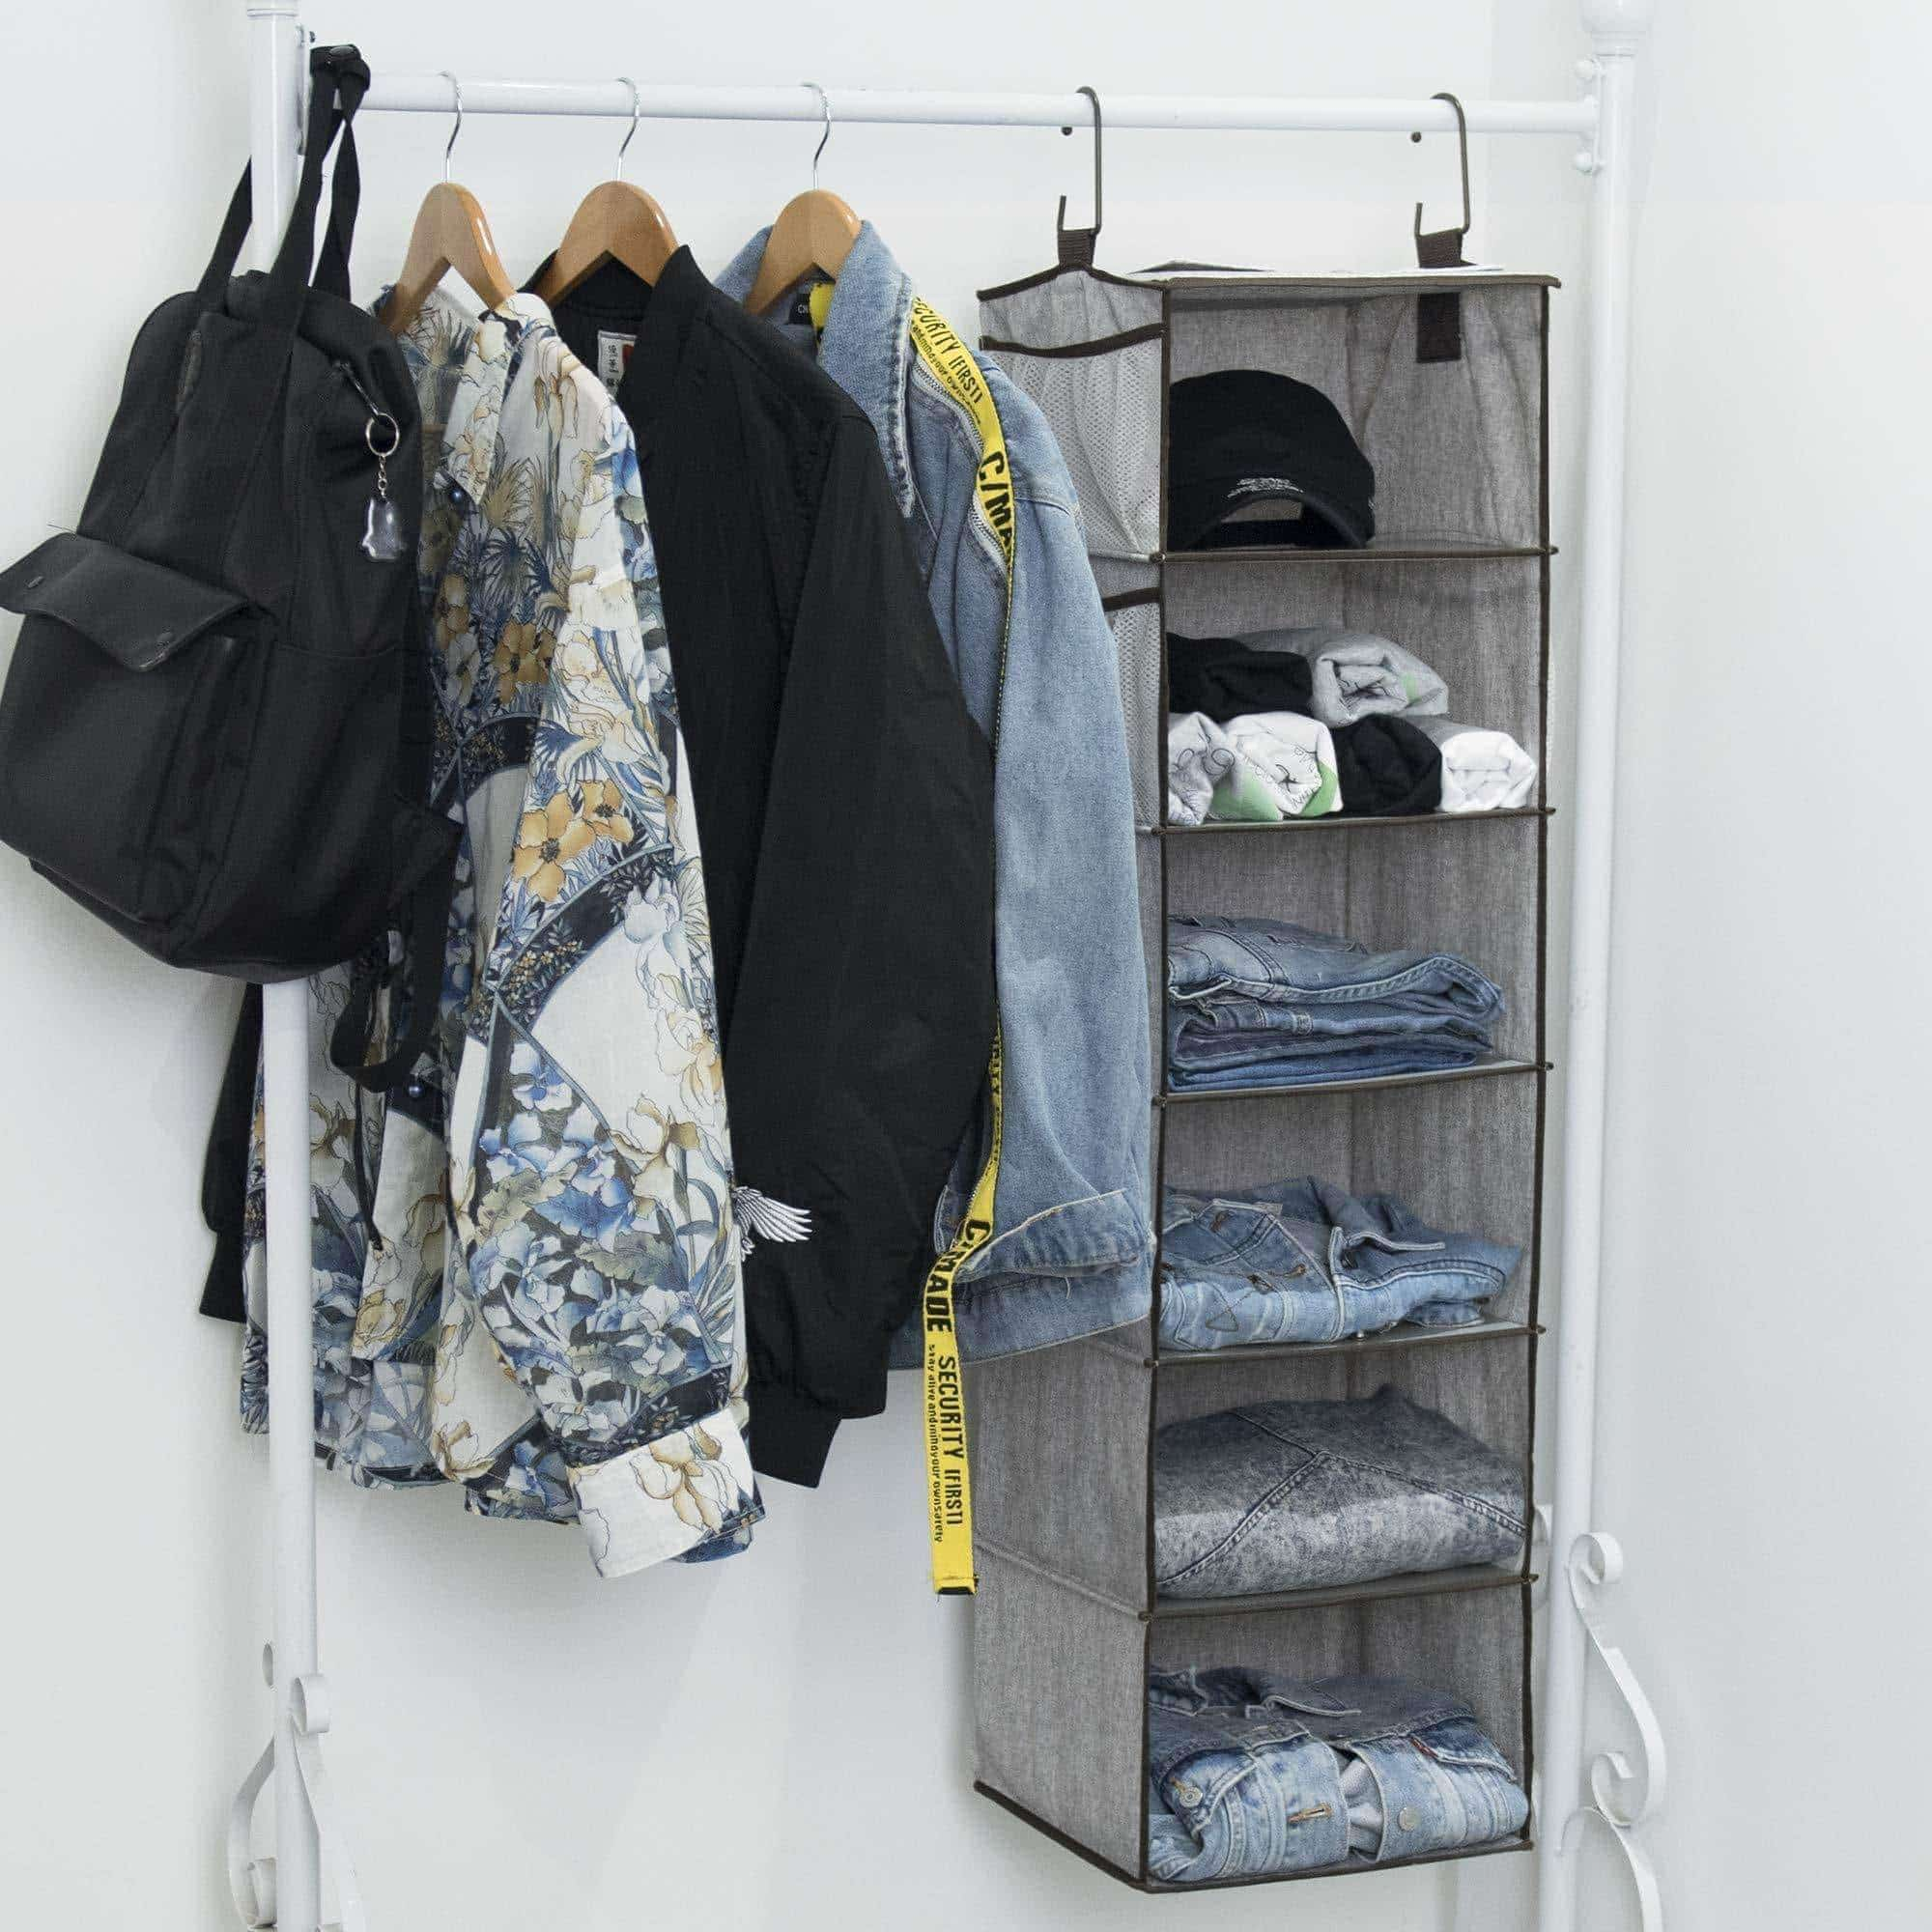 Latest storageworks hanging closet organizer 6 shelf closet organizer 2 ways dorm closet organizers and storage sweater organizer for closet gray 12x12x42 inches